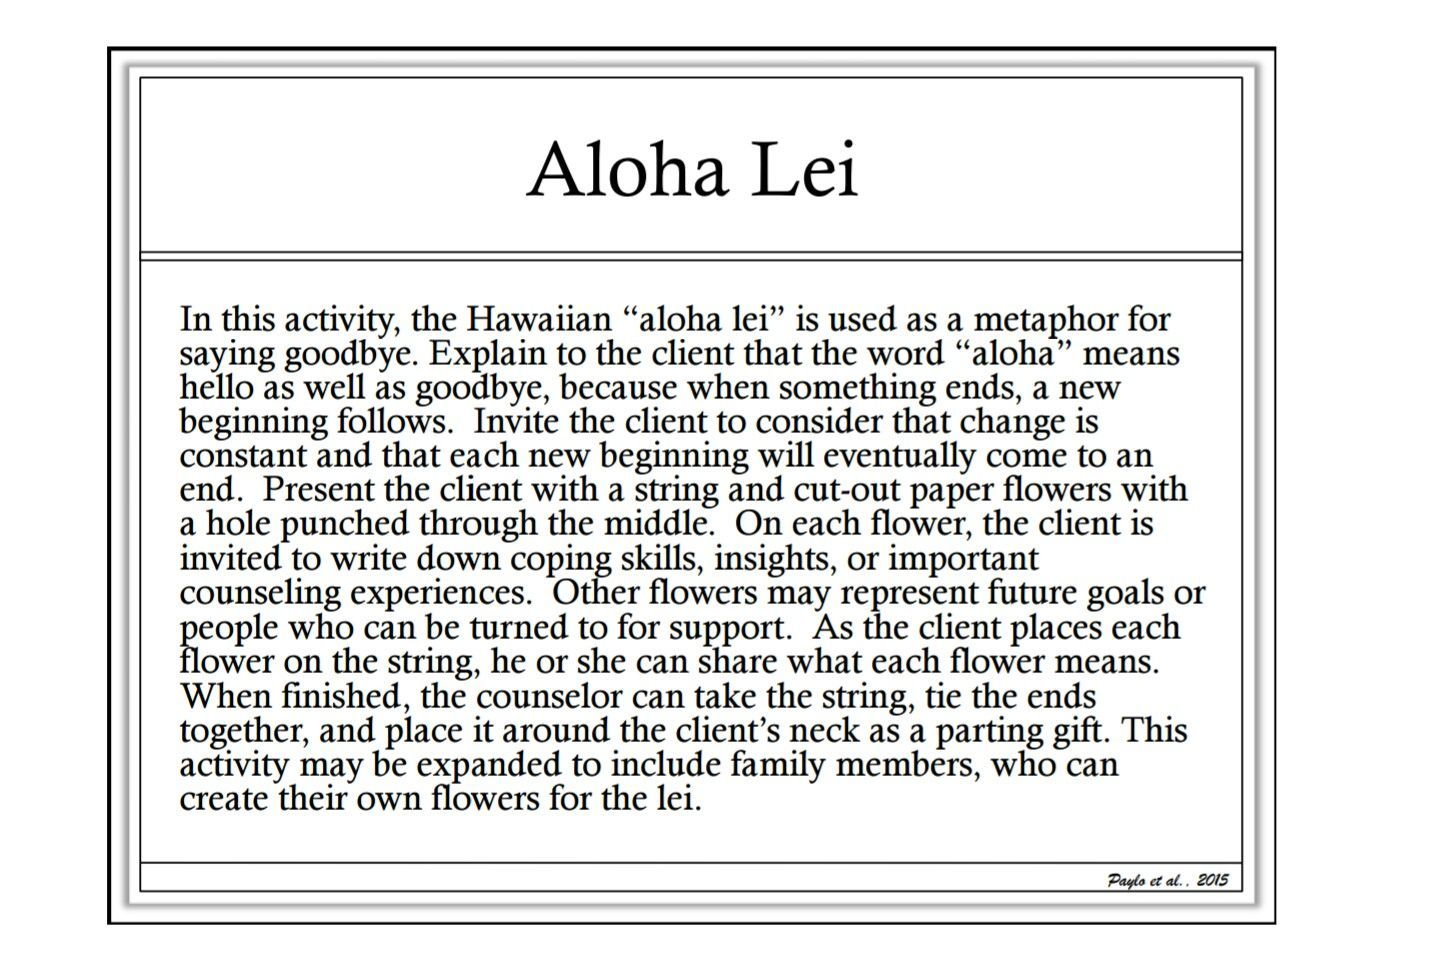 Aloha Lei Termination Activity